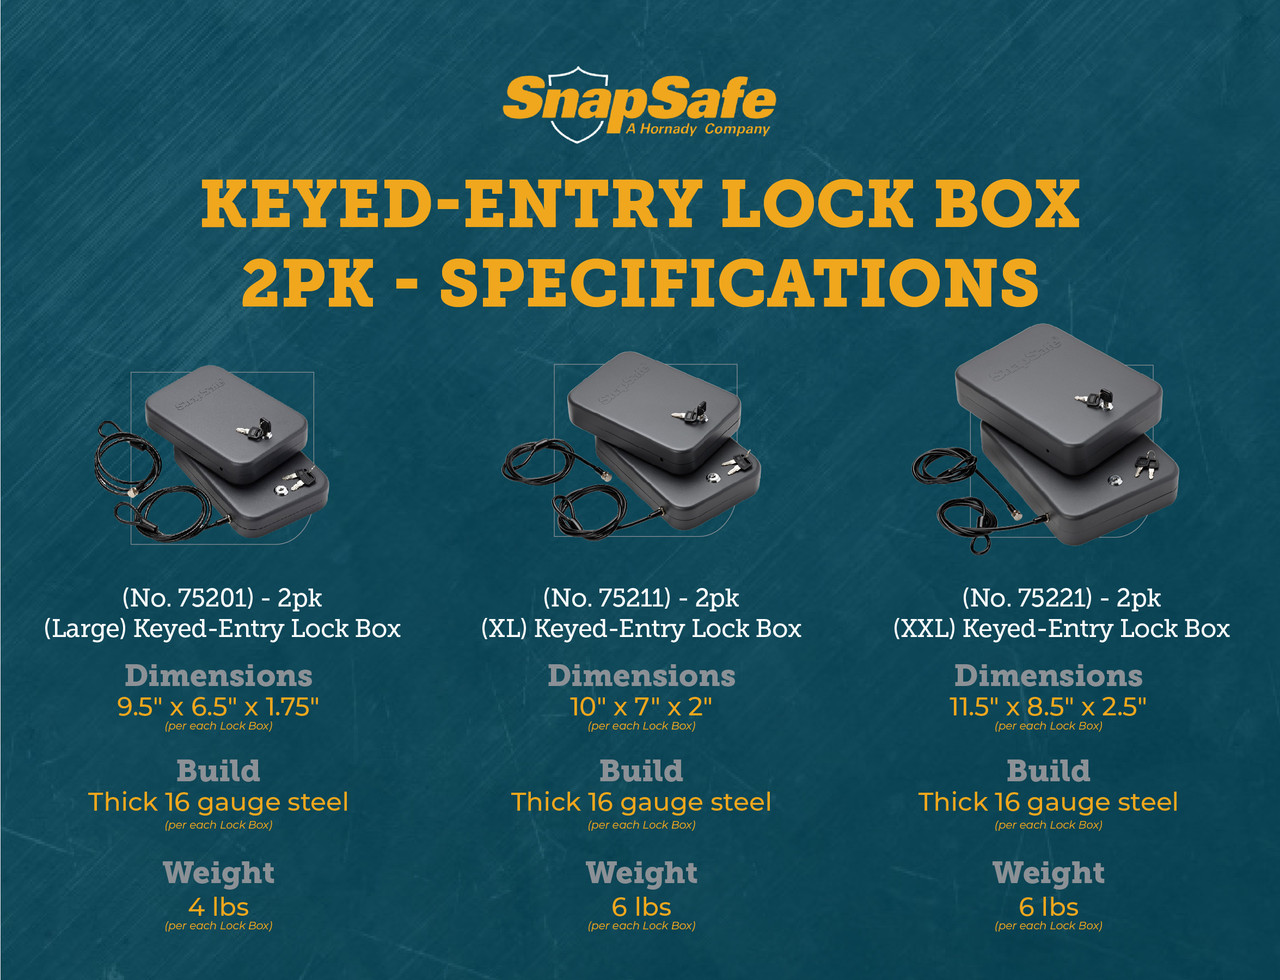 https://d3d71ba2asa5oz.cloudfront.net/23000296/images/snapsafe-2-pack-keyed-alike-large-lock-boxes-casku18175-2.jpg